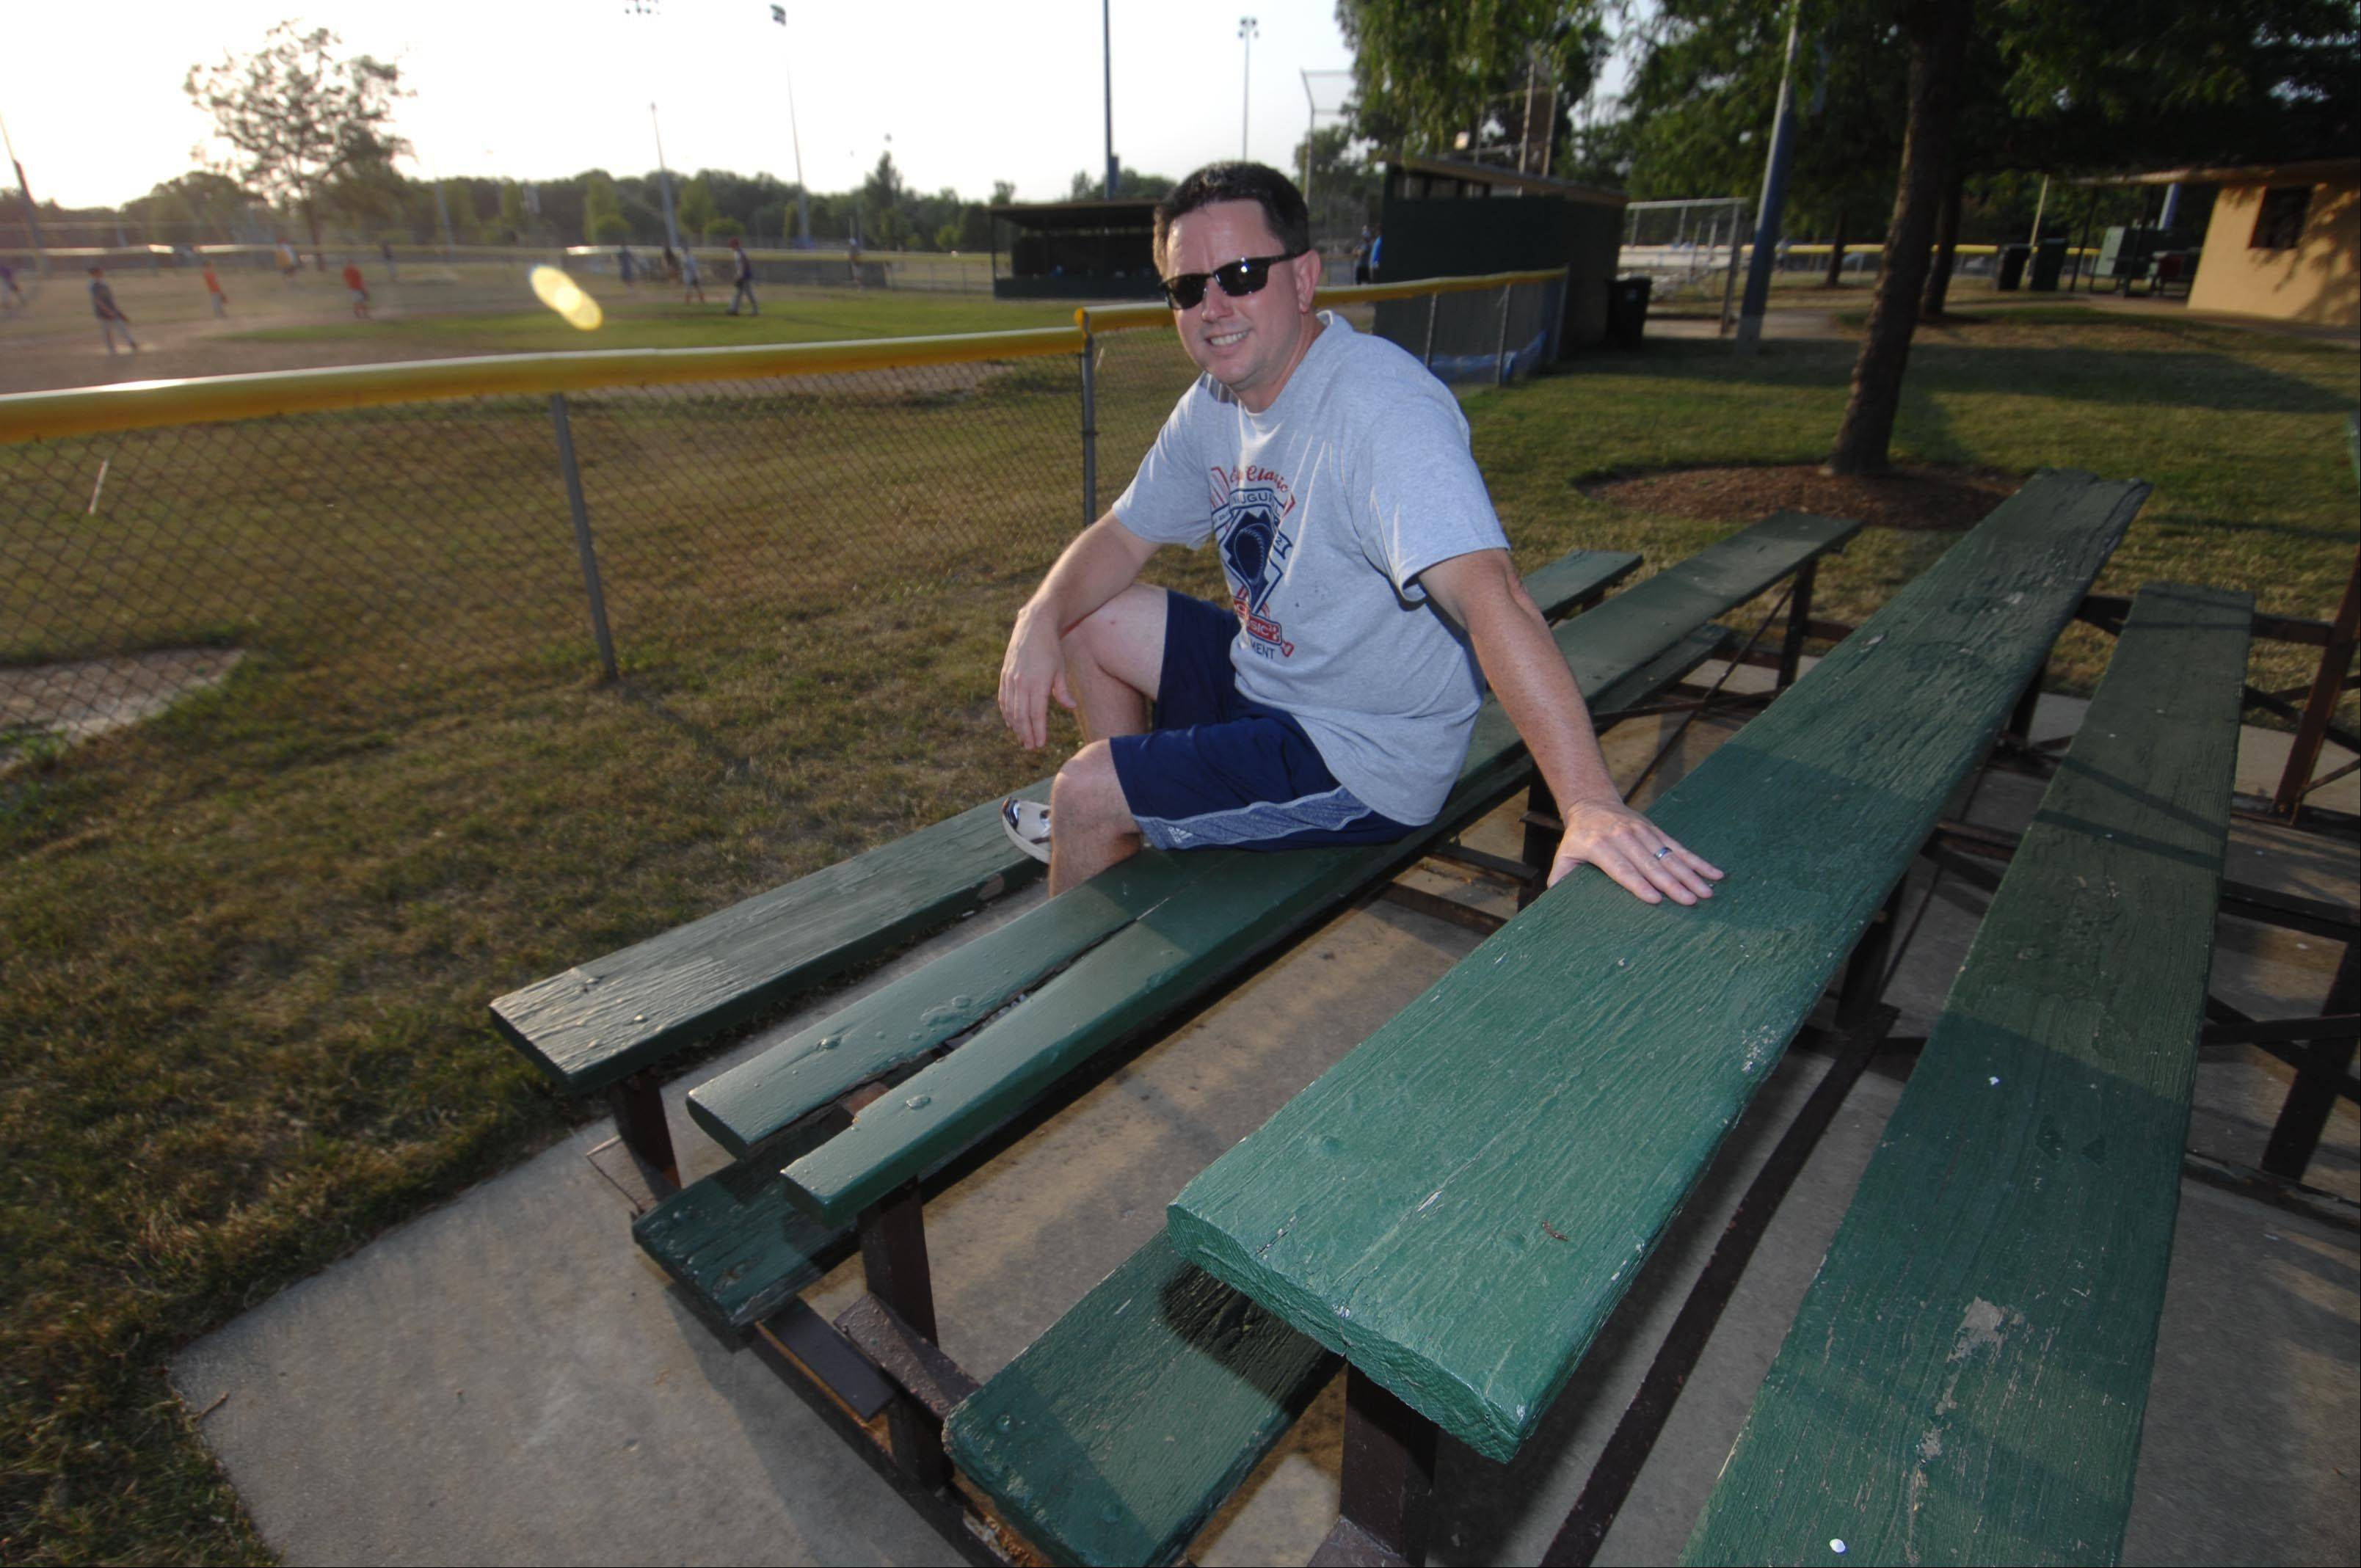 Brad Heath, president of the Elgin Classic Little League, plans to use a grant to replace old bleachers in Wing Park.